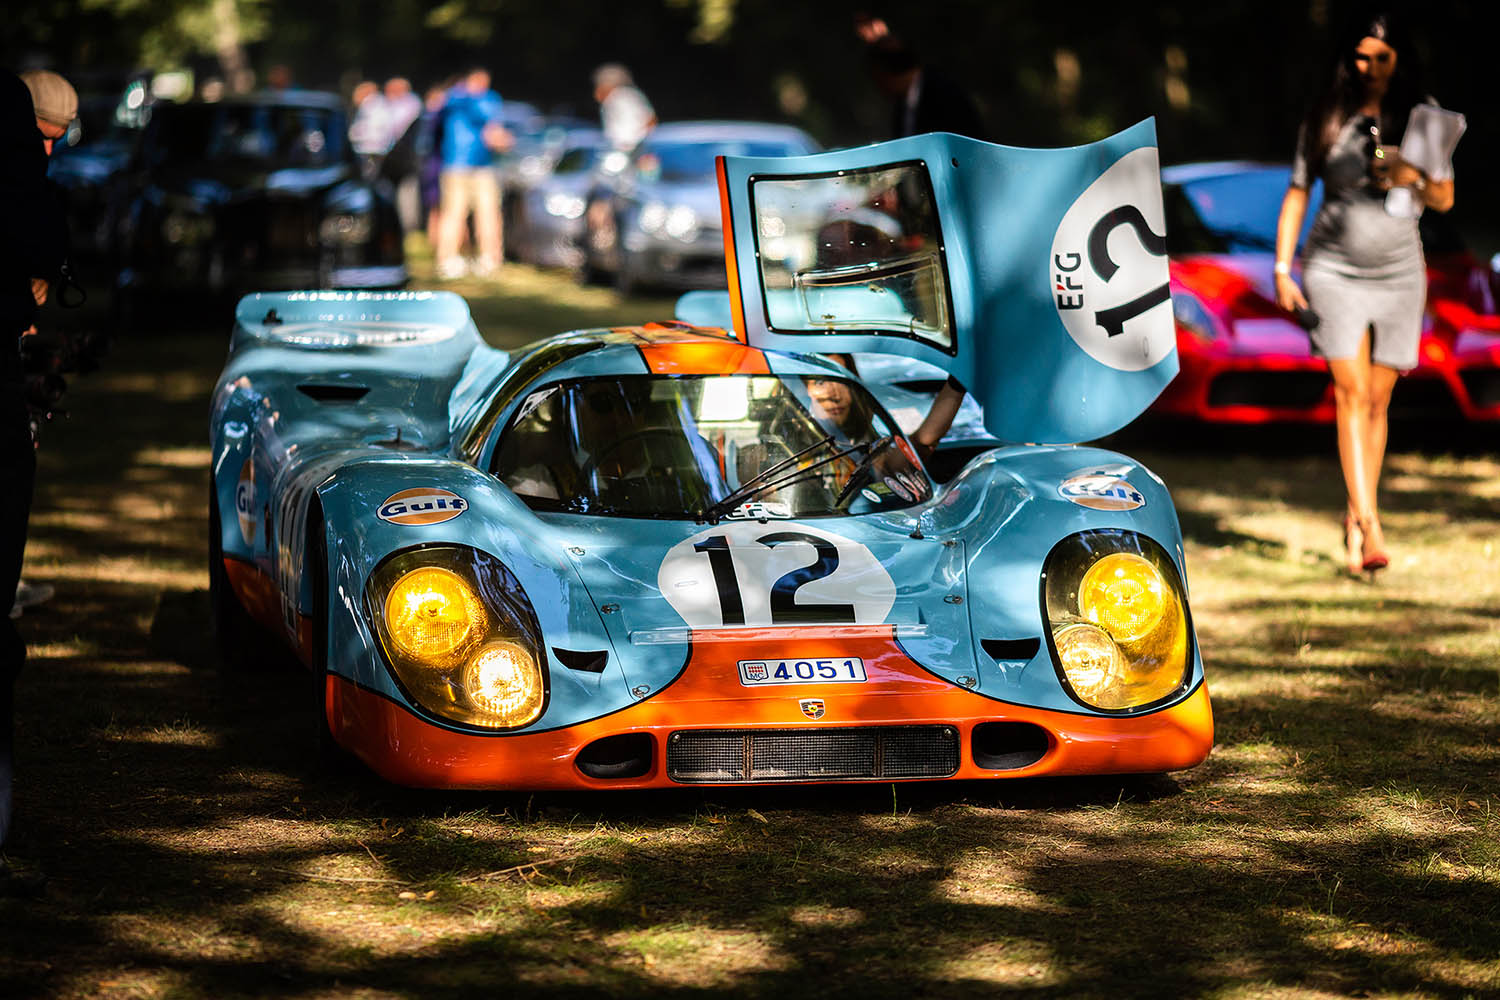 2019_PeterAuto_Chantilly_AlexisGoure_1084.jpg